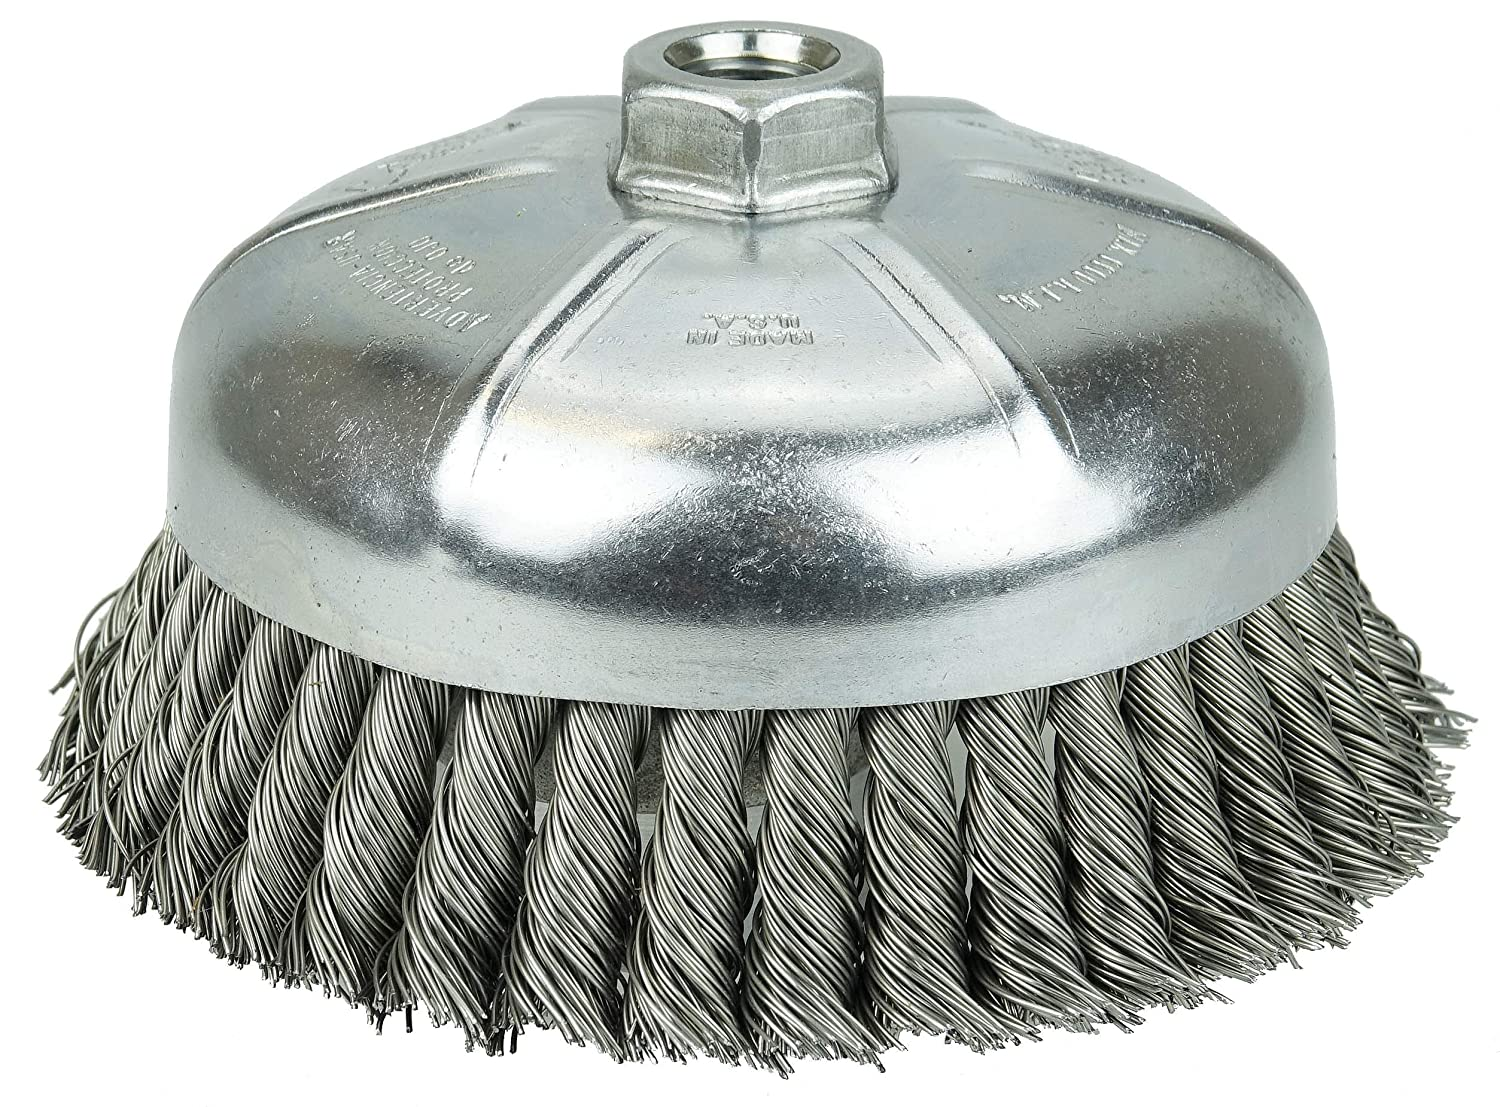 9000 rpm Single Row Weiler Wire Cup Brush Steel 4 Diameter 0.035 Wire Diameter 5//8-11 Arbor 1-1//4 Bristle Length 12326 Threaded Hole Partial Twist Knotted 4 Diameter 5//8-11 Arbor Pack of 1 1-1//4 Bristle Length 0.035 Wire Diameter